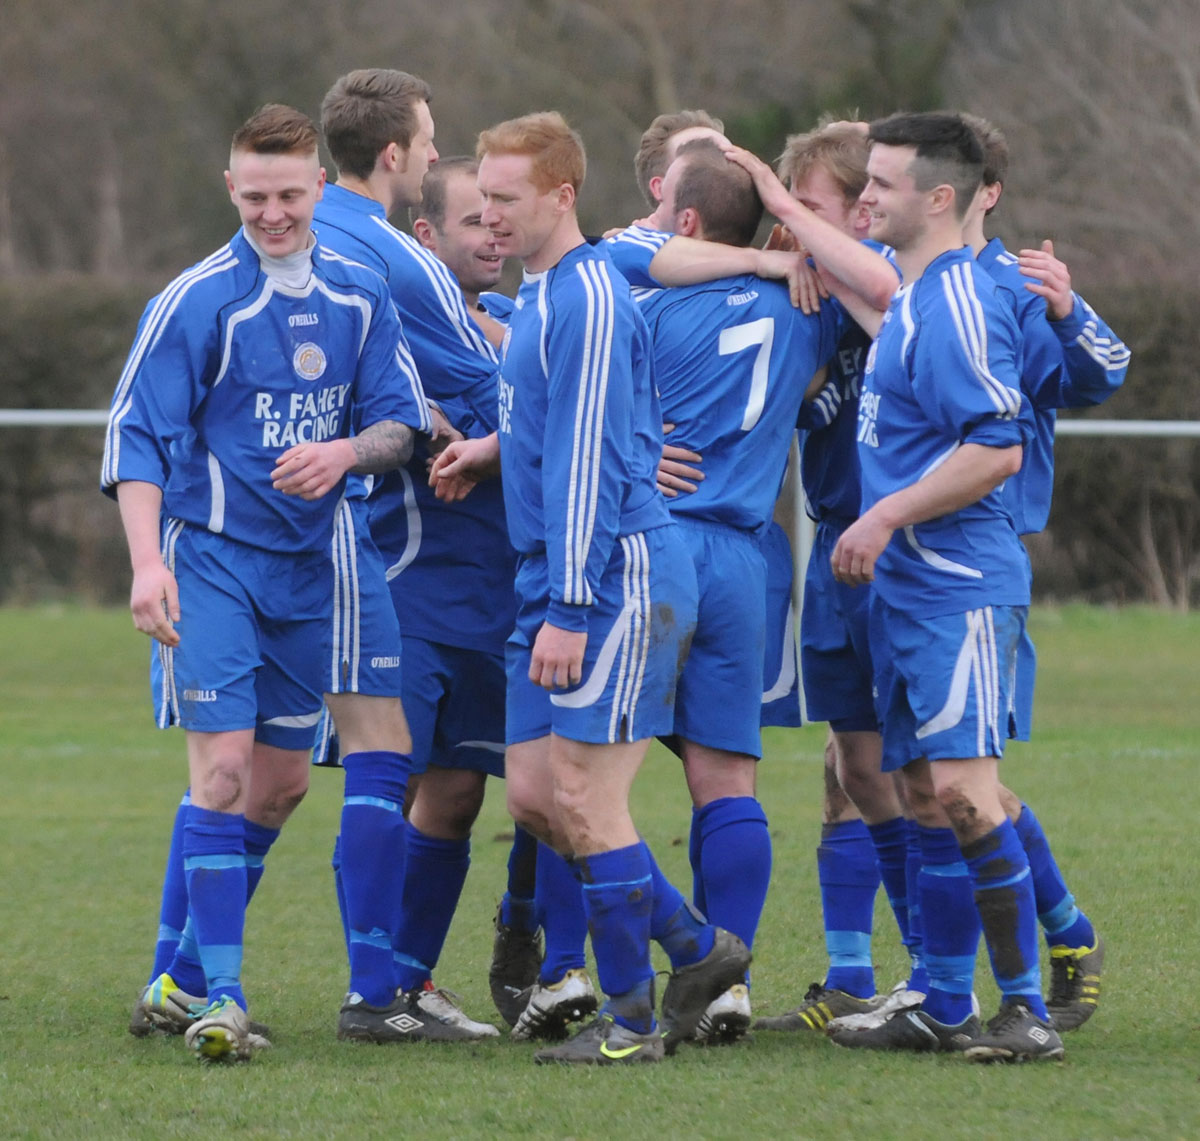 Old Malton St Mary's celebrate Richard Dunning's goal against Dunnington in the York Minster Engineering League premier division